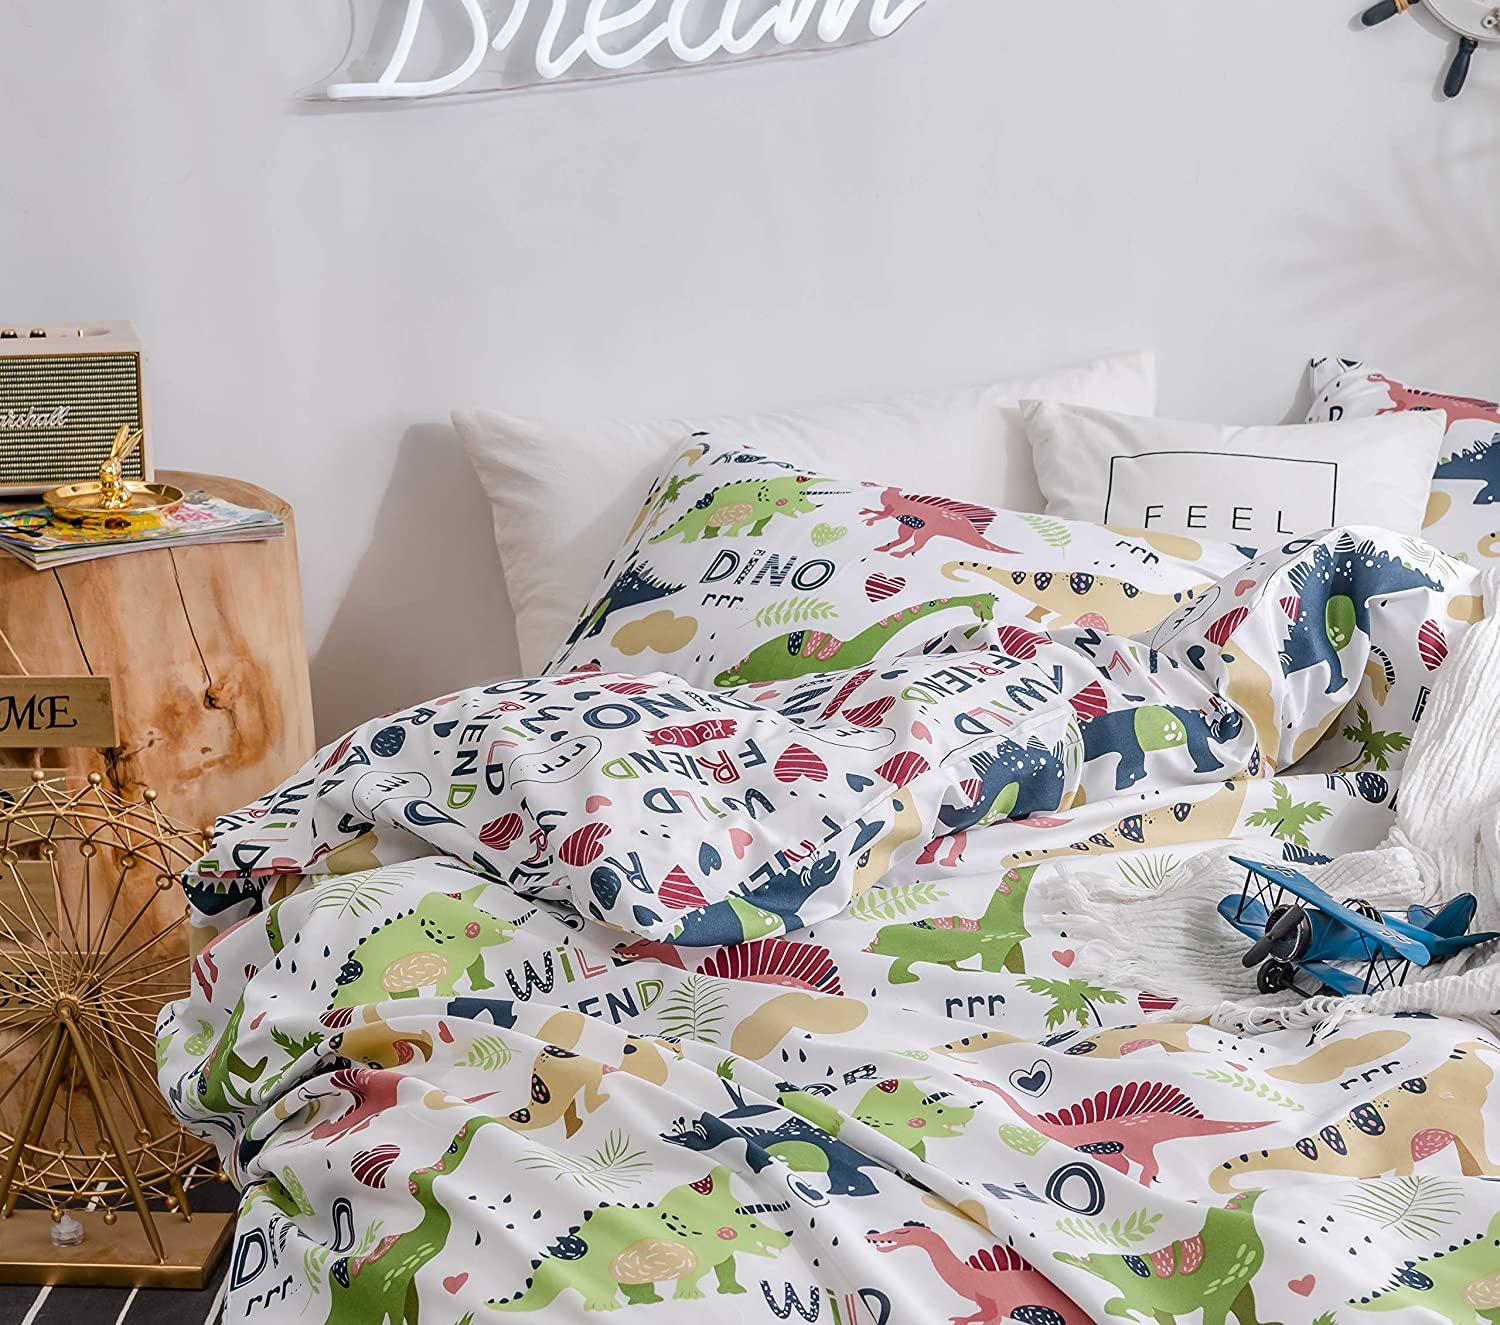 Duvet Cover Set for Boys Girls King Bedding Set with Pillow Shams Dinosaur Park Jurassic T-Rex Dino Comforter Cover Zipper Closure and Ties 3 Pieces King White